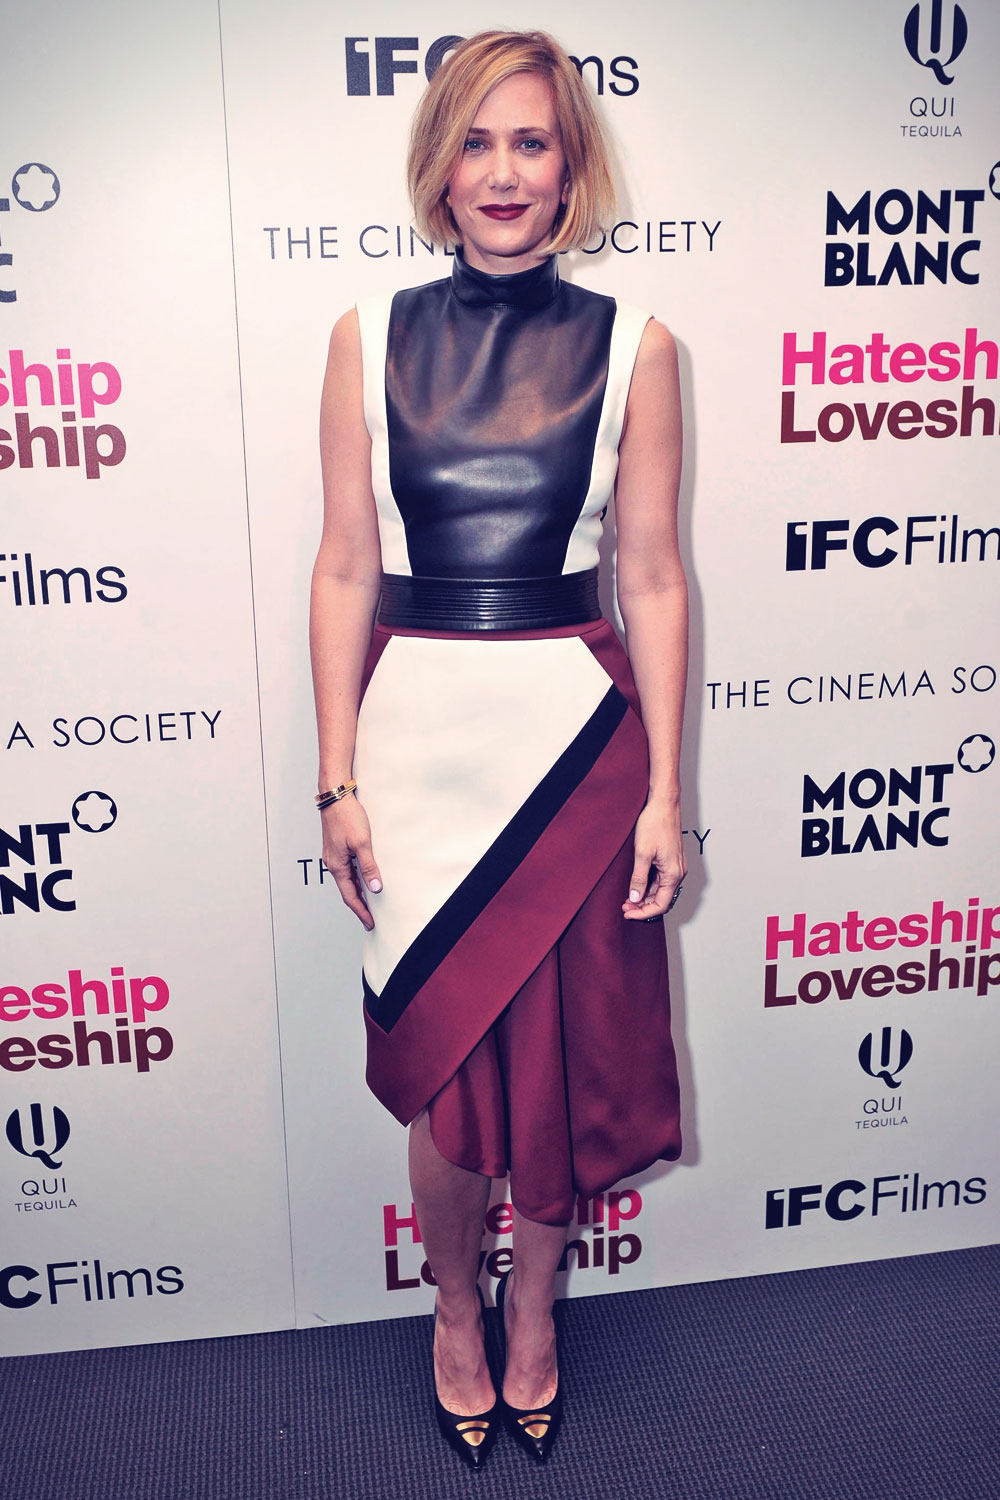 Kristen Wiig attends the screening of IFC Films Hateship Loveship